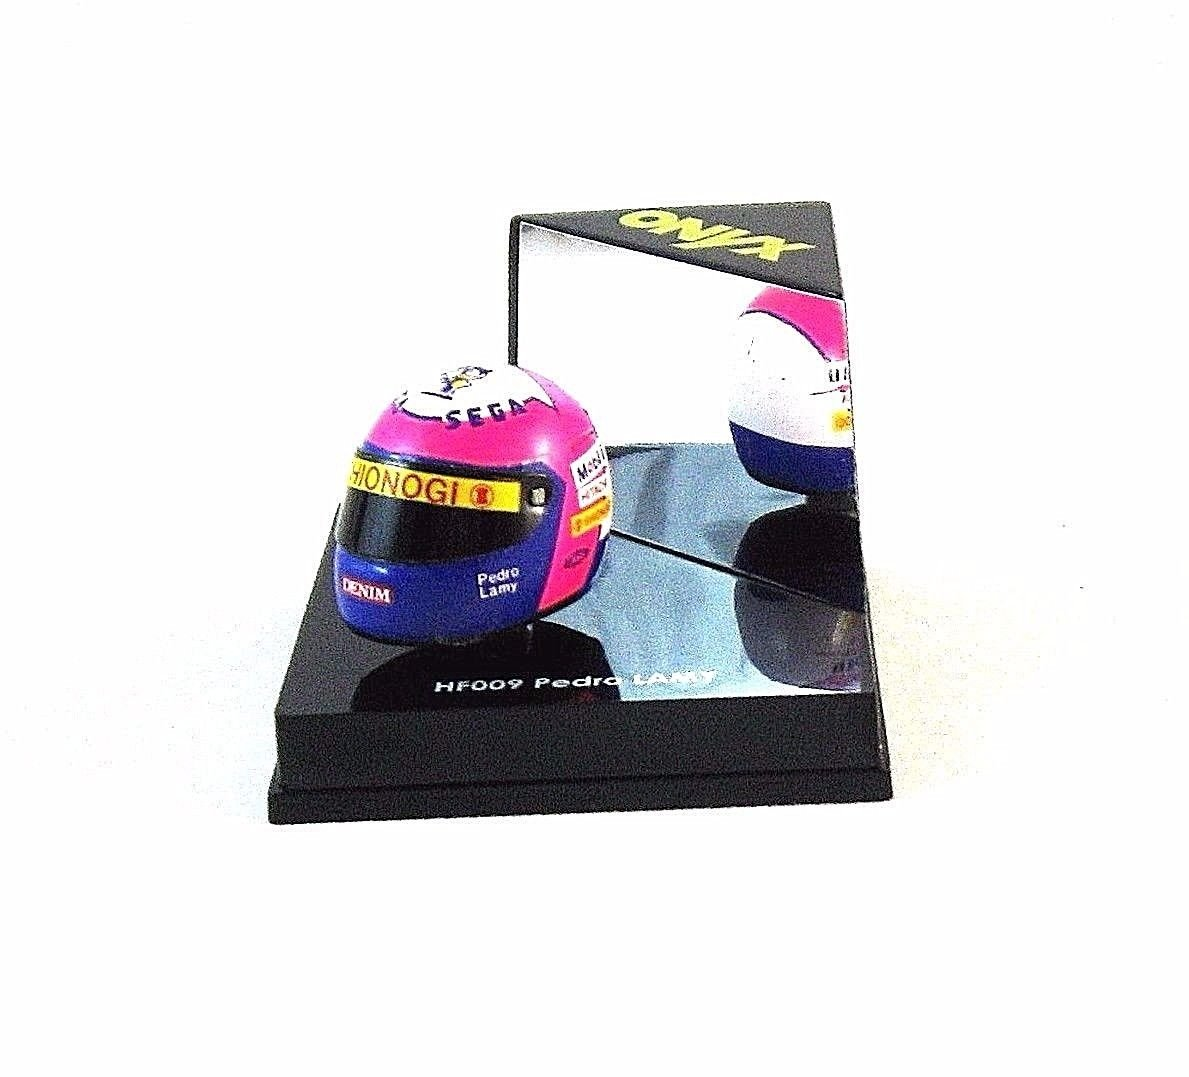 HELMET FORMULA 1 HF009 PEDRO LAMY,ONYX 1/12 DIECAST HELMET MODEL,COLLECTIBLE,NEW